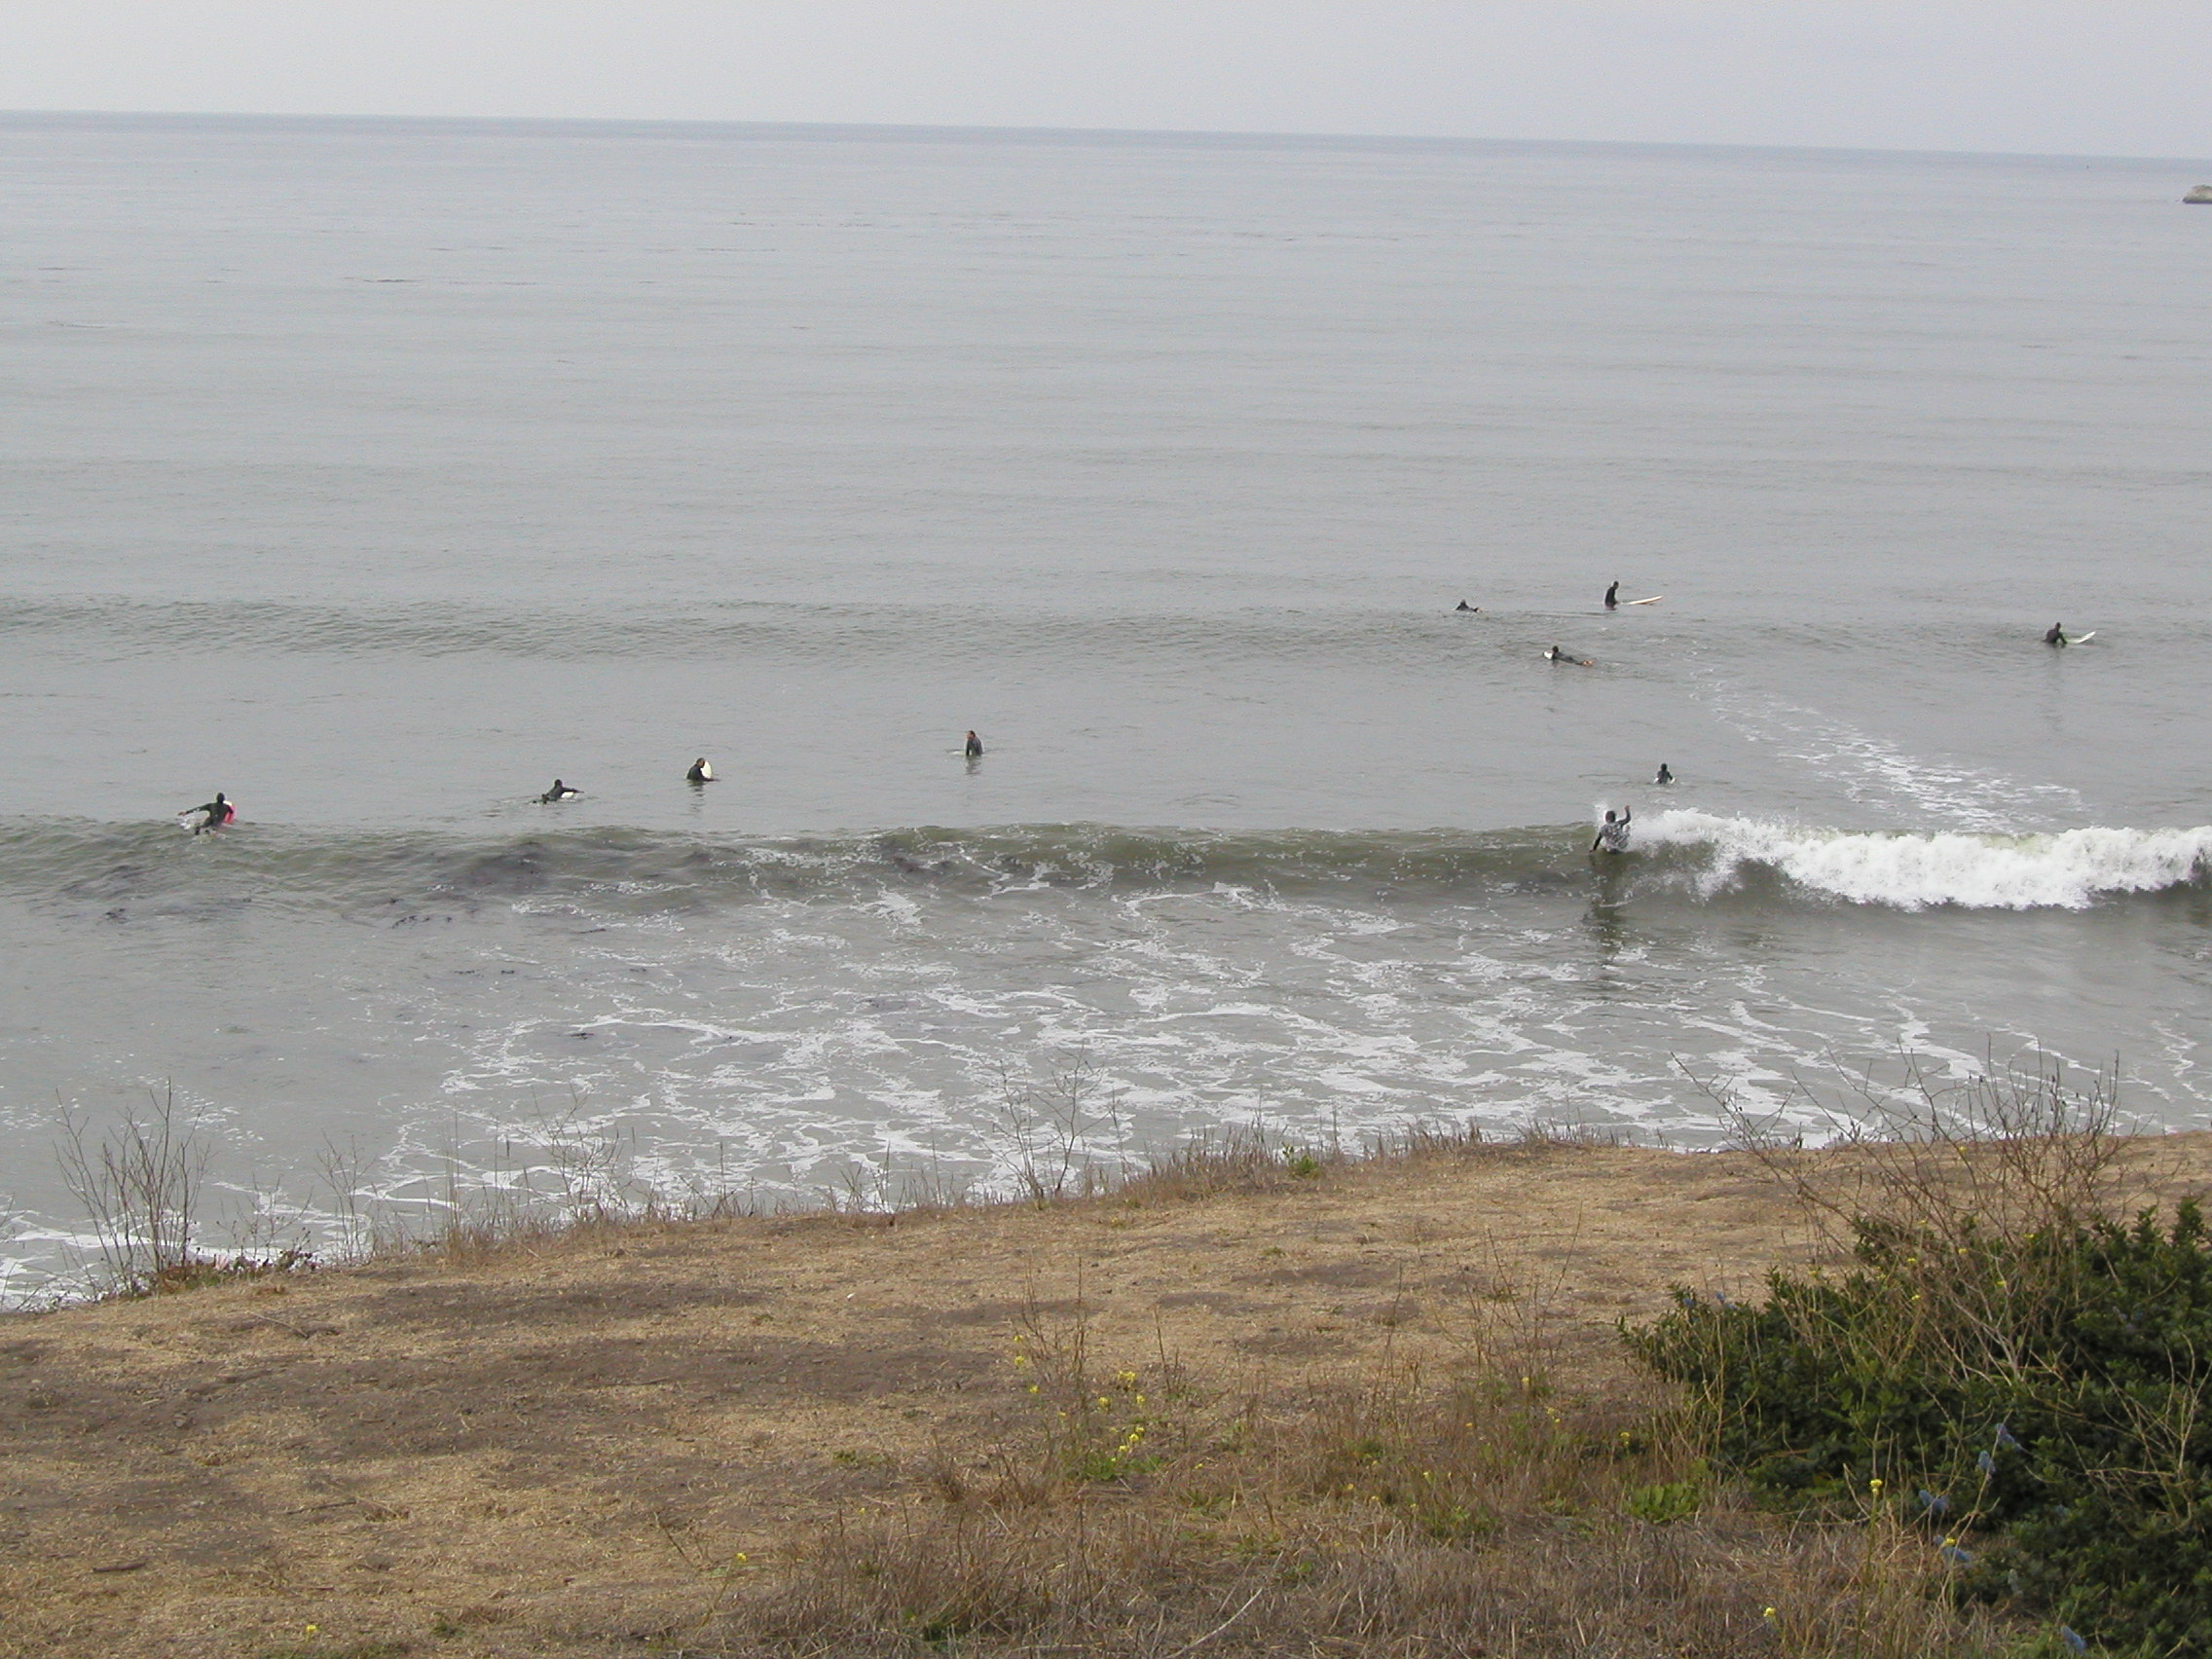 Pacific surfers